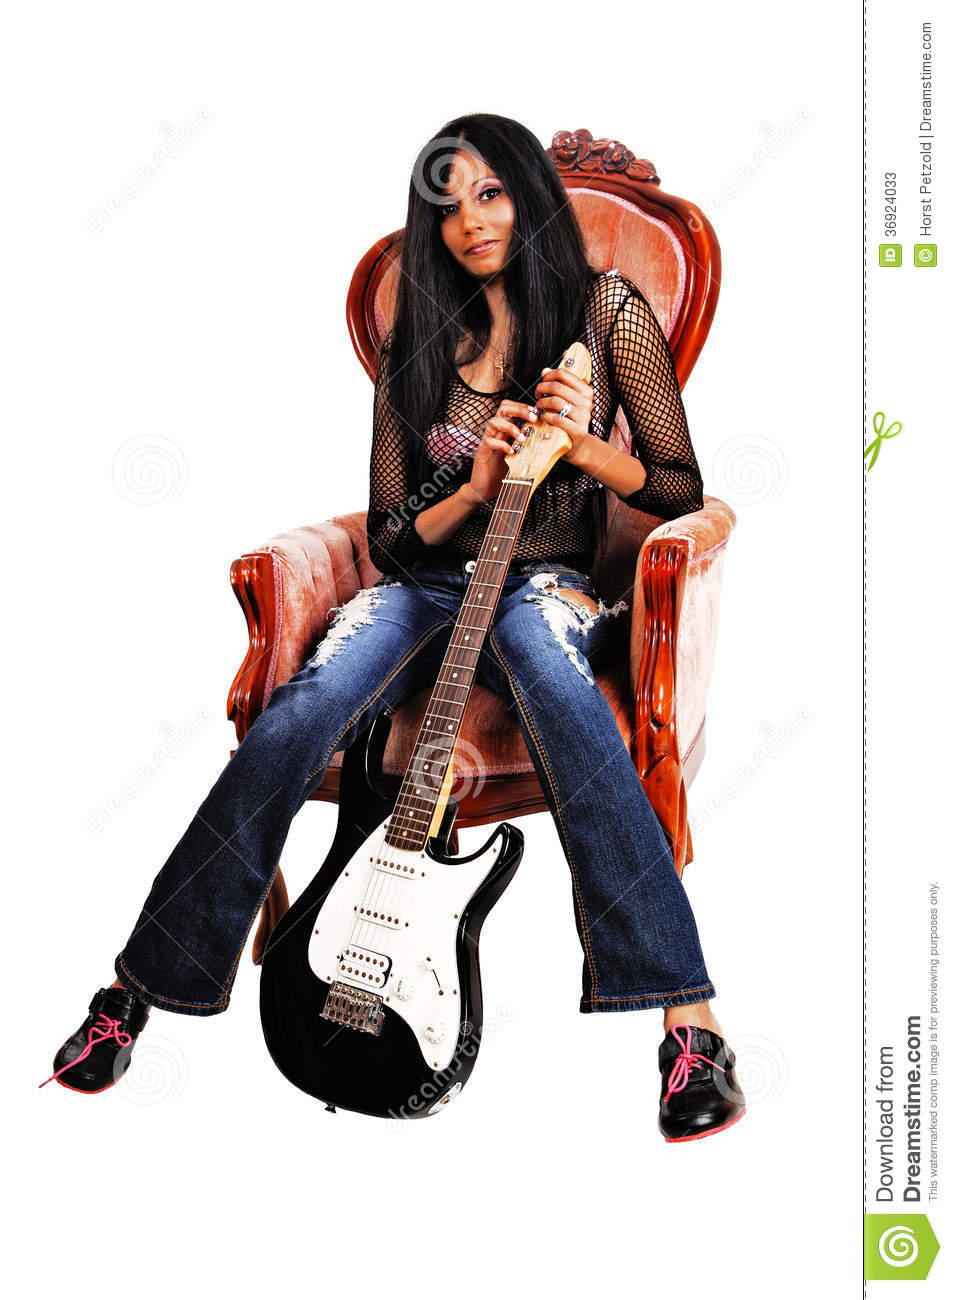 Guitarist sitting in armchair stock photos image 36924033 for Sitting in armchair